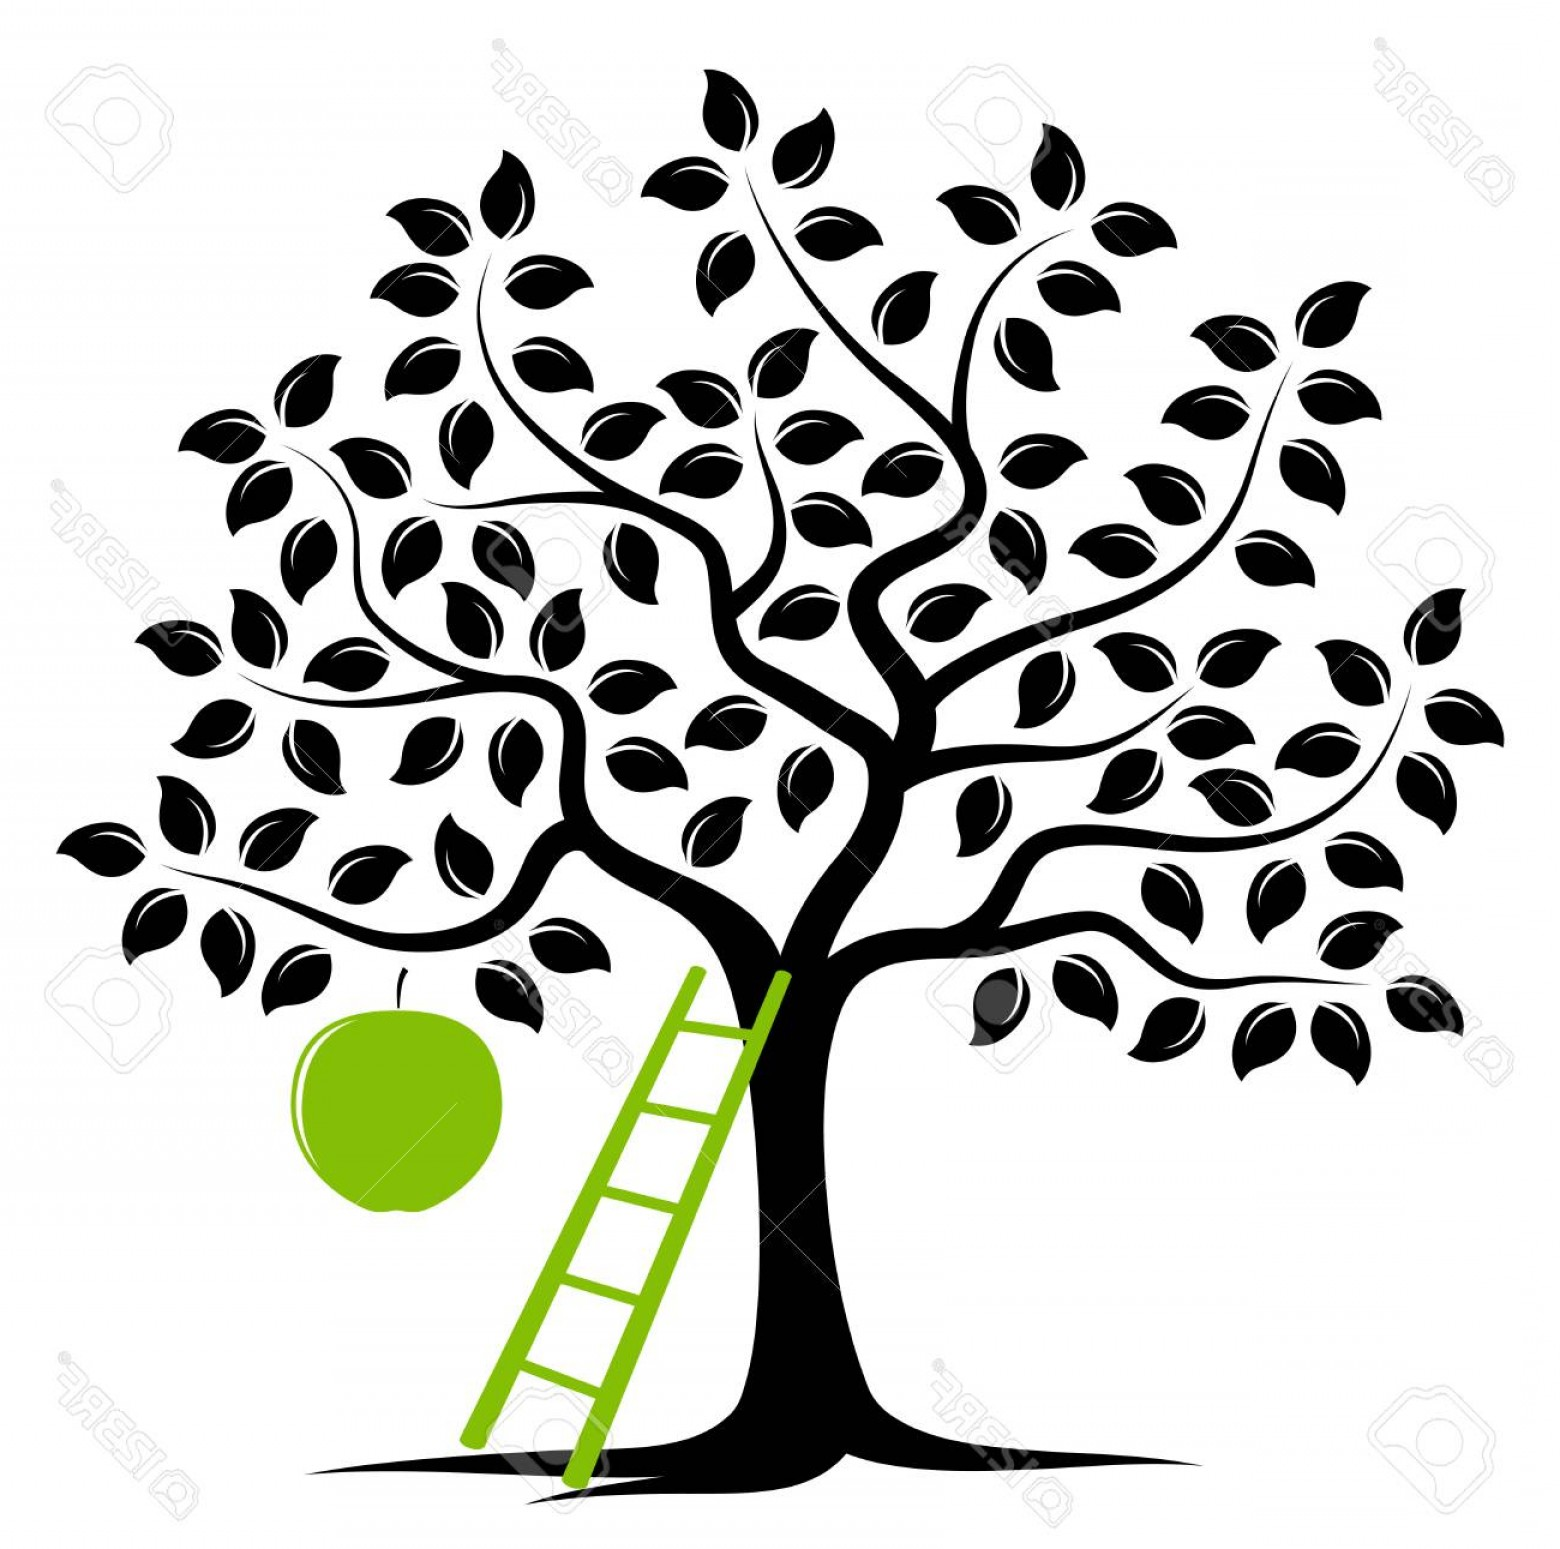 Apple Tree Vector Black: Photostock Vector Apple Tree With One Big Apple And Ladder Isolated On White Background